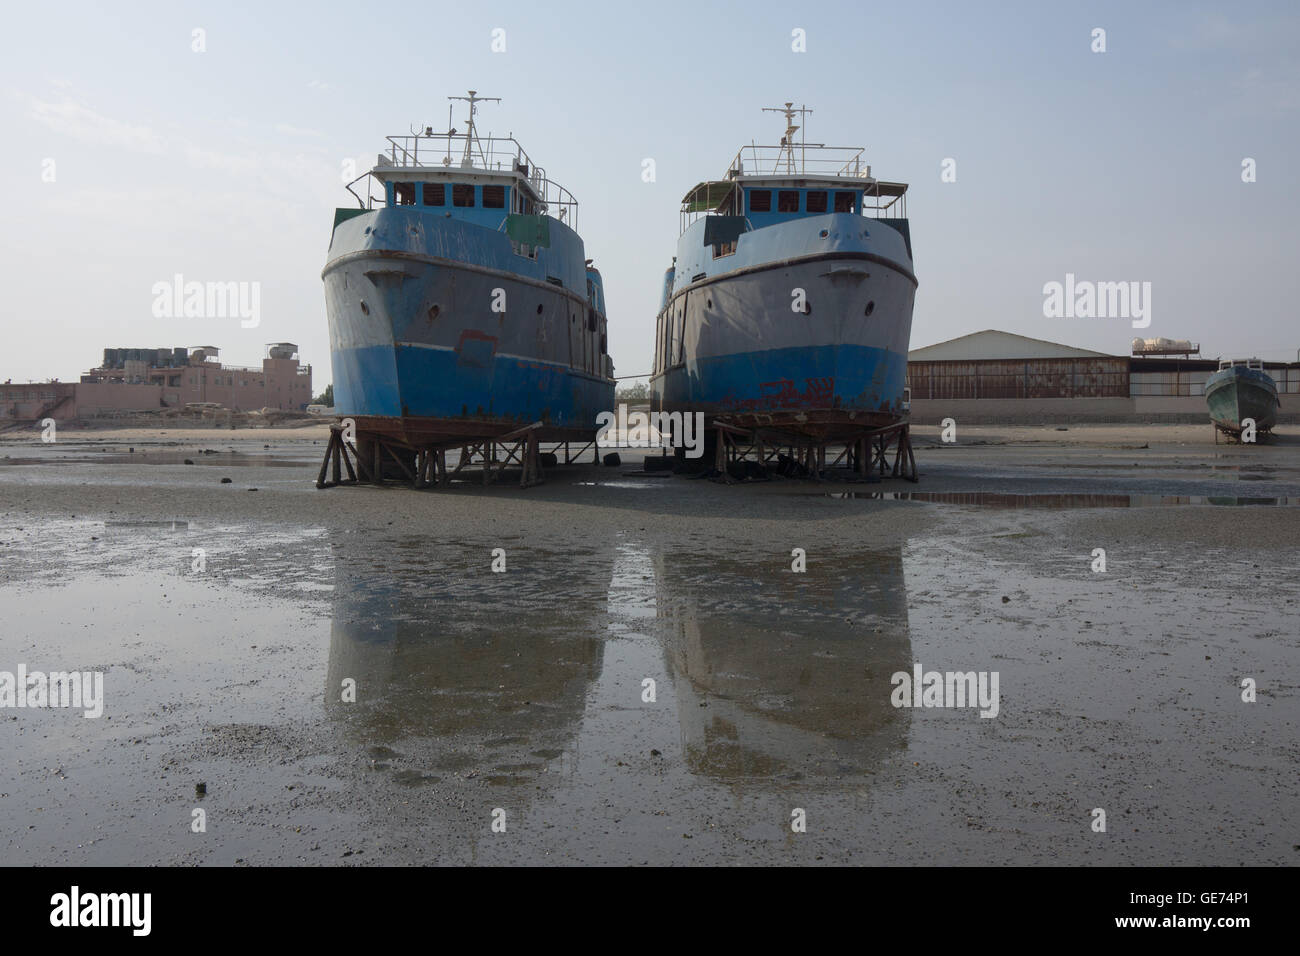 Two boats in dry dock on stands. - Stock Image